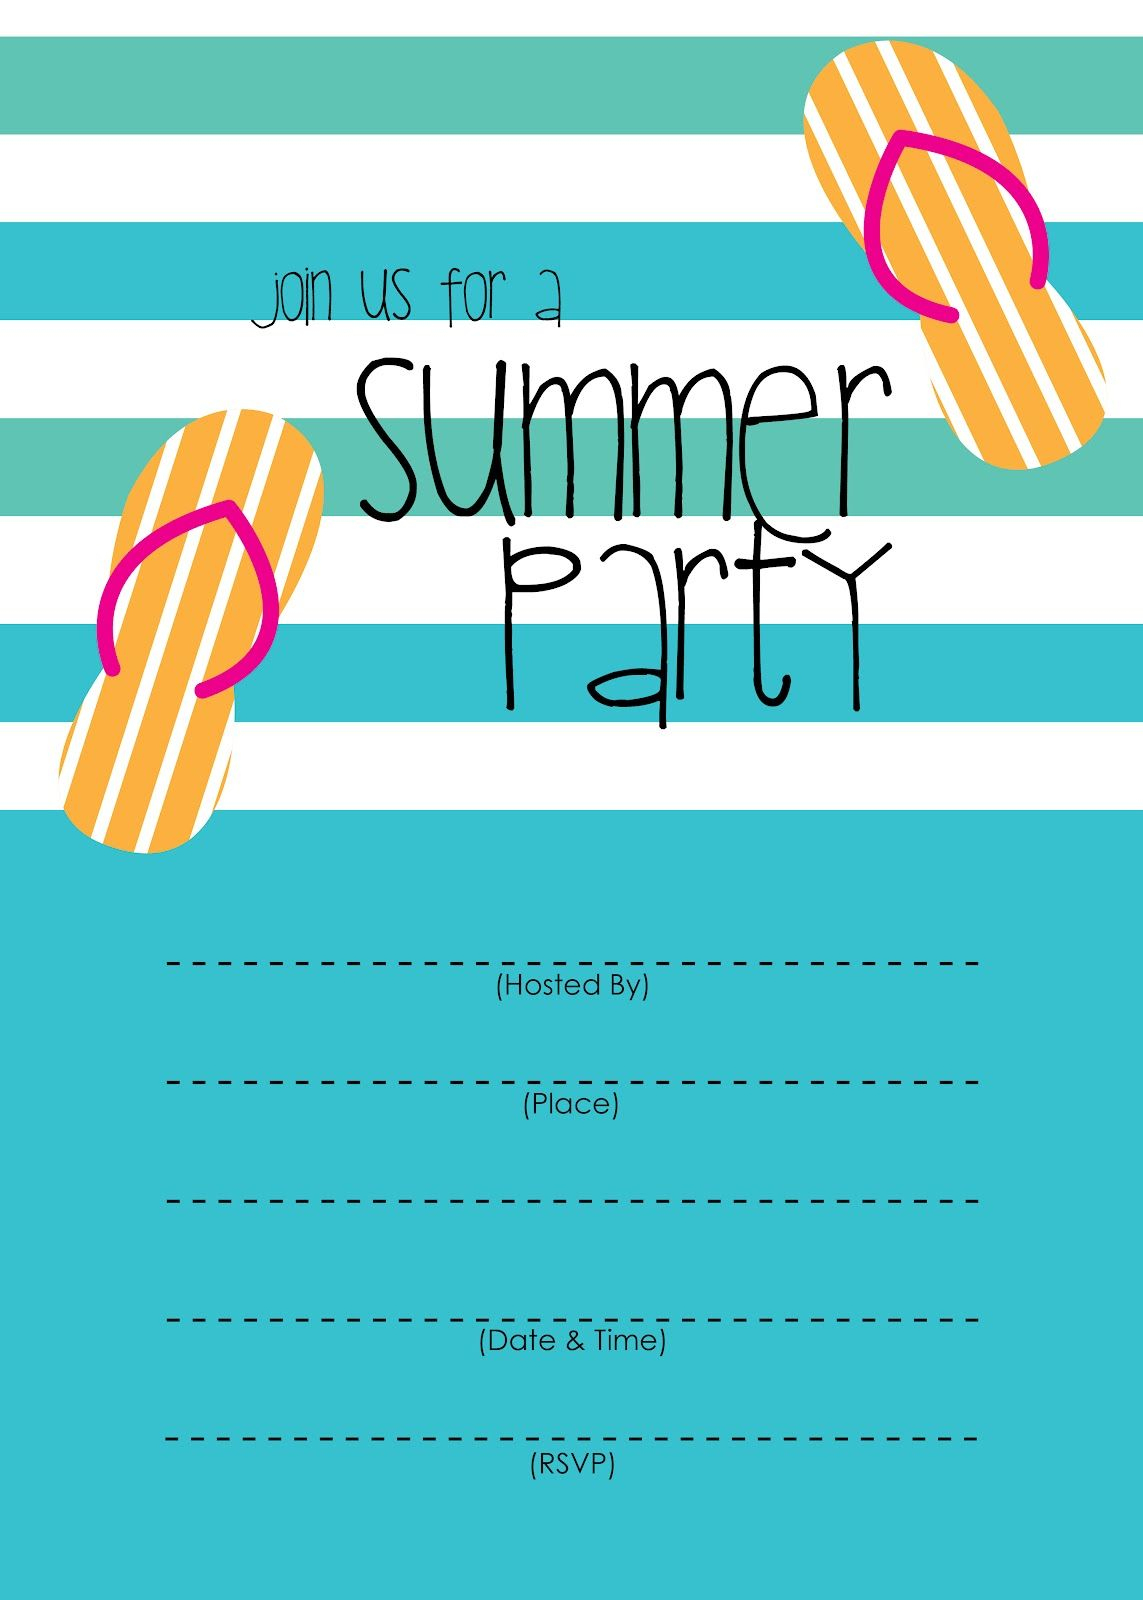 Summer Party Invitation – Free Printable   End Of Year Party Ideas - Free Printable Pool Party Invitation Cards